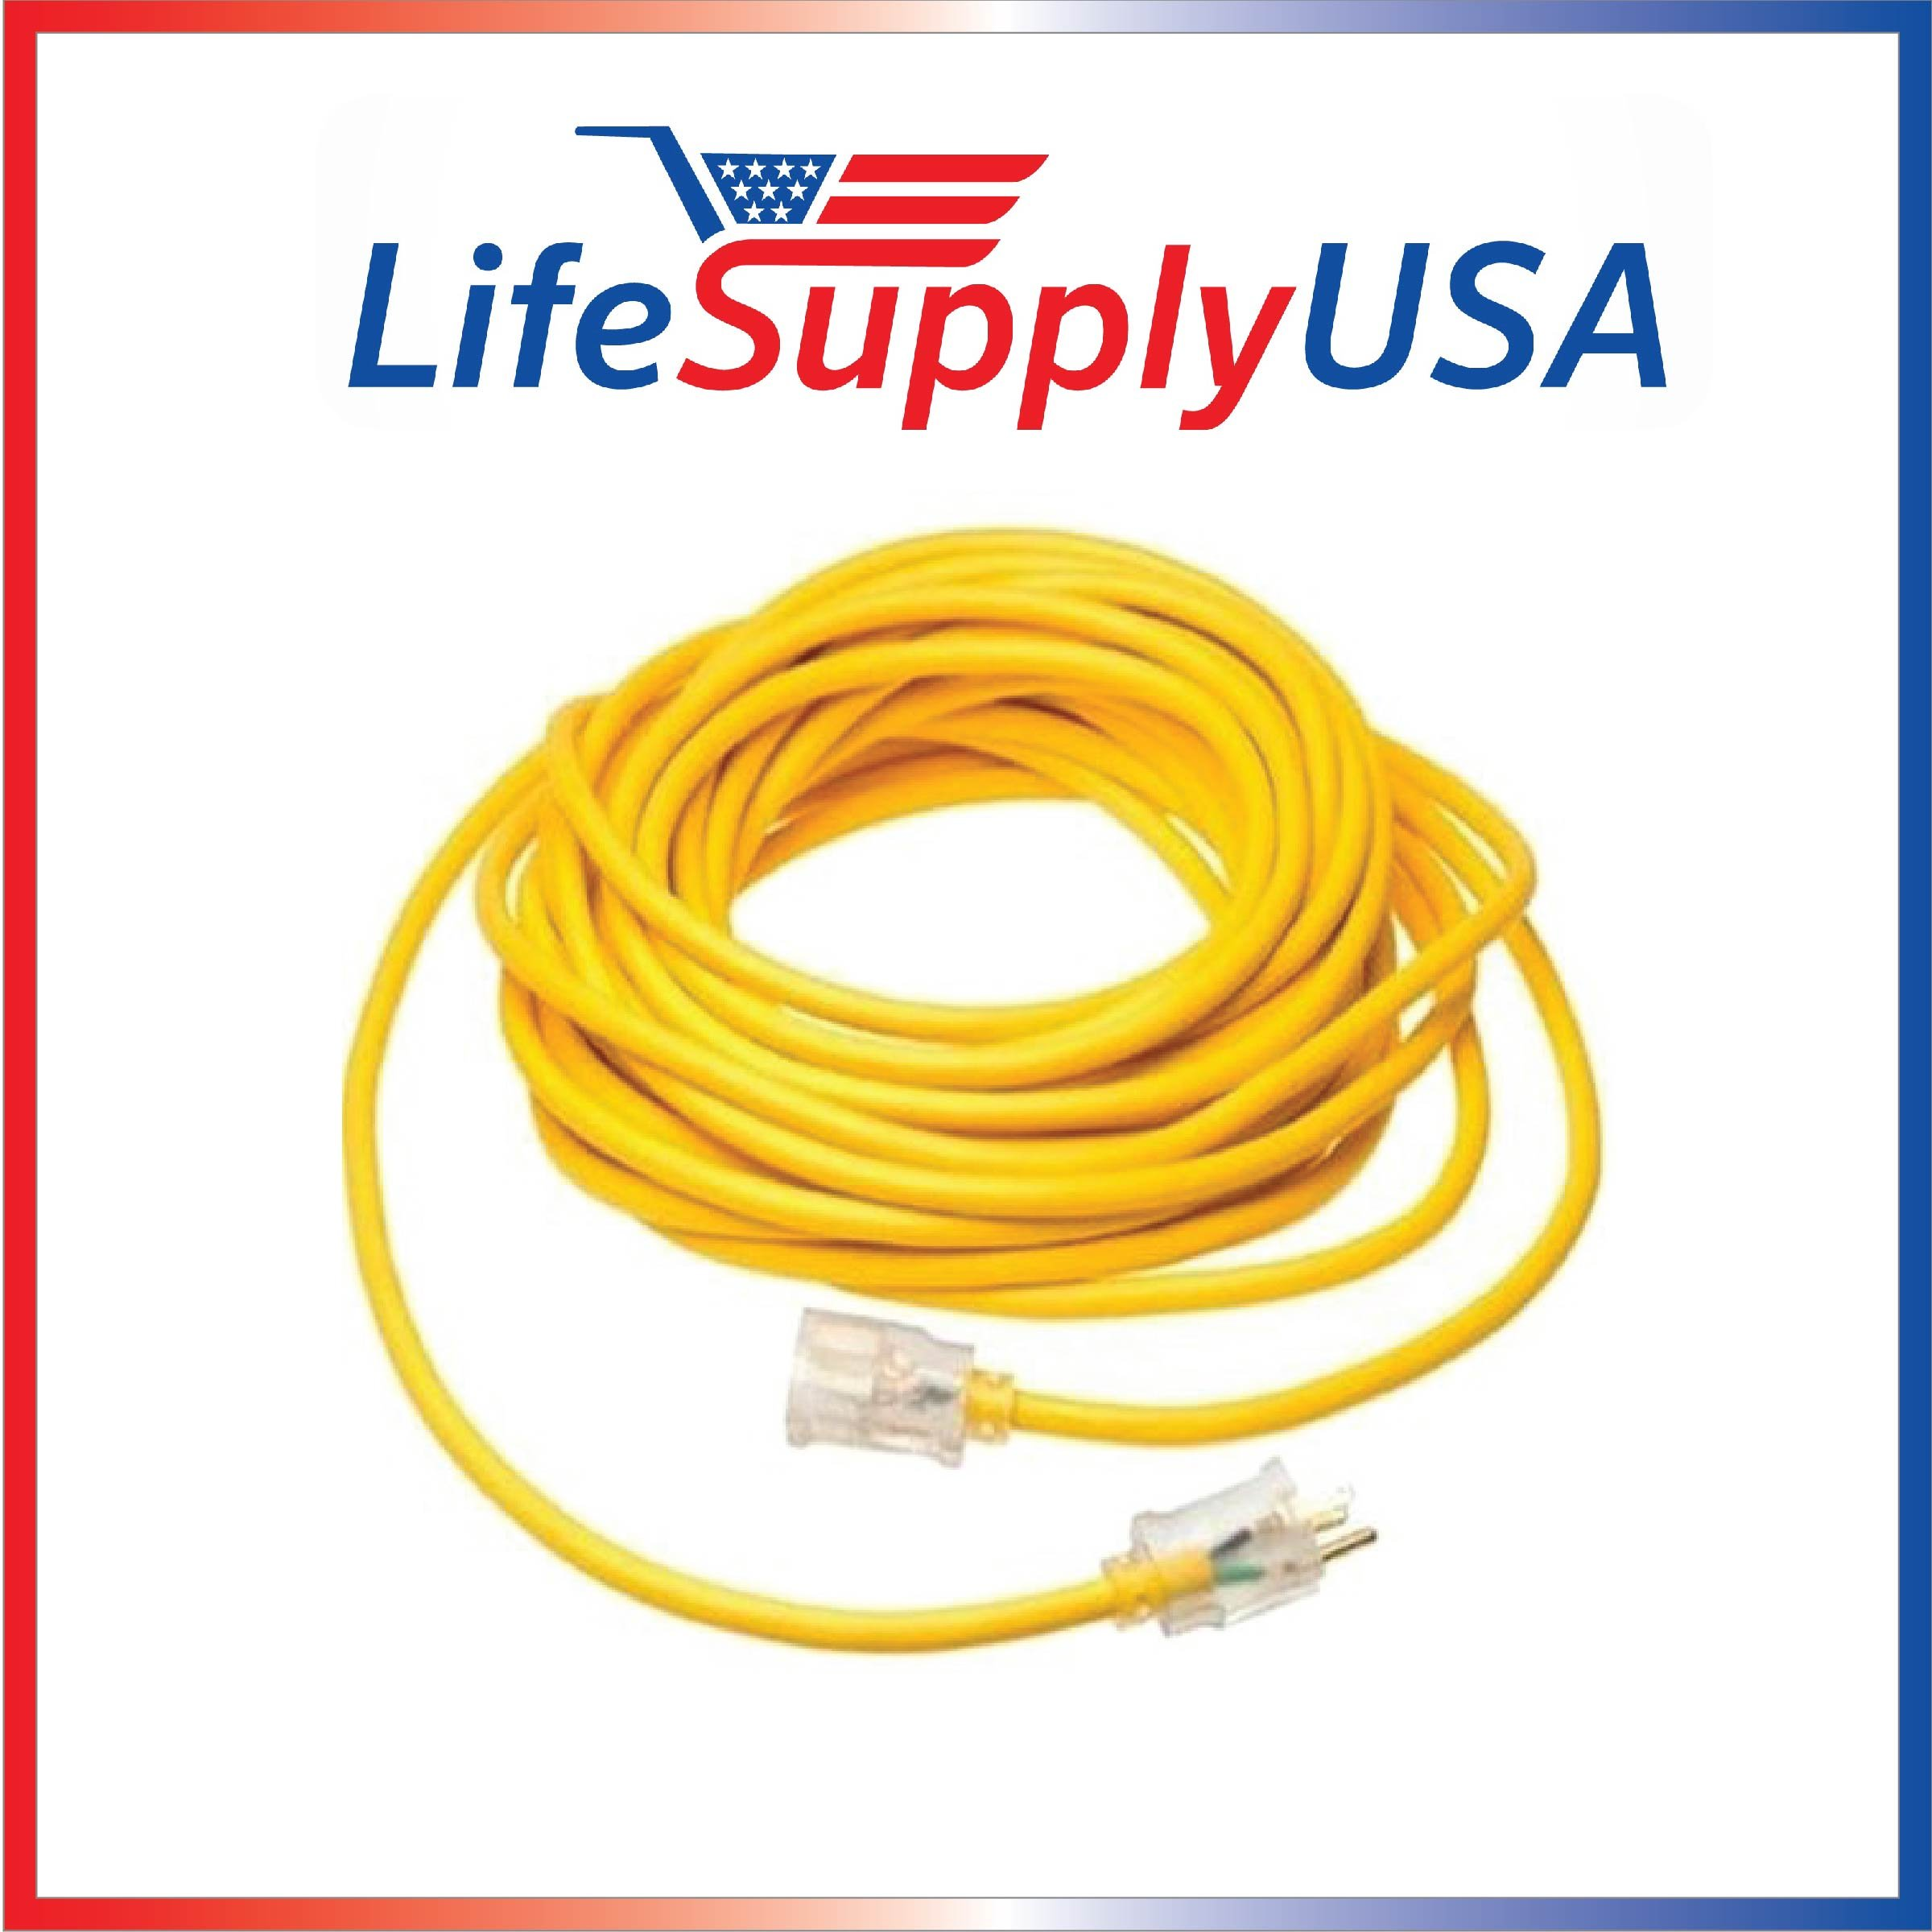 14/3 100ft SJT Full Copper 13 Amp 125 Volt 1625 Watt Lighted End Indoor/Outdoor Extension cord (100 feet) by LifeSupplyUSA